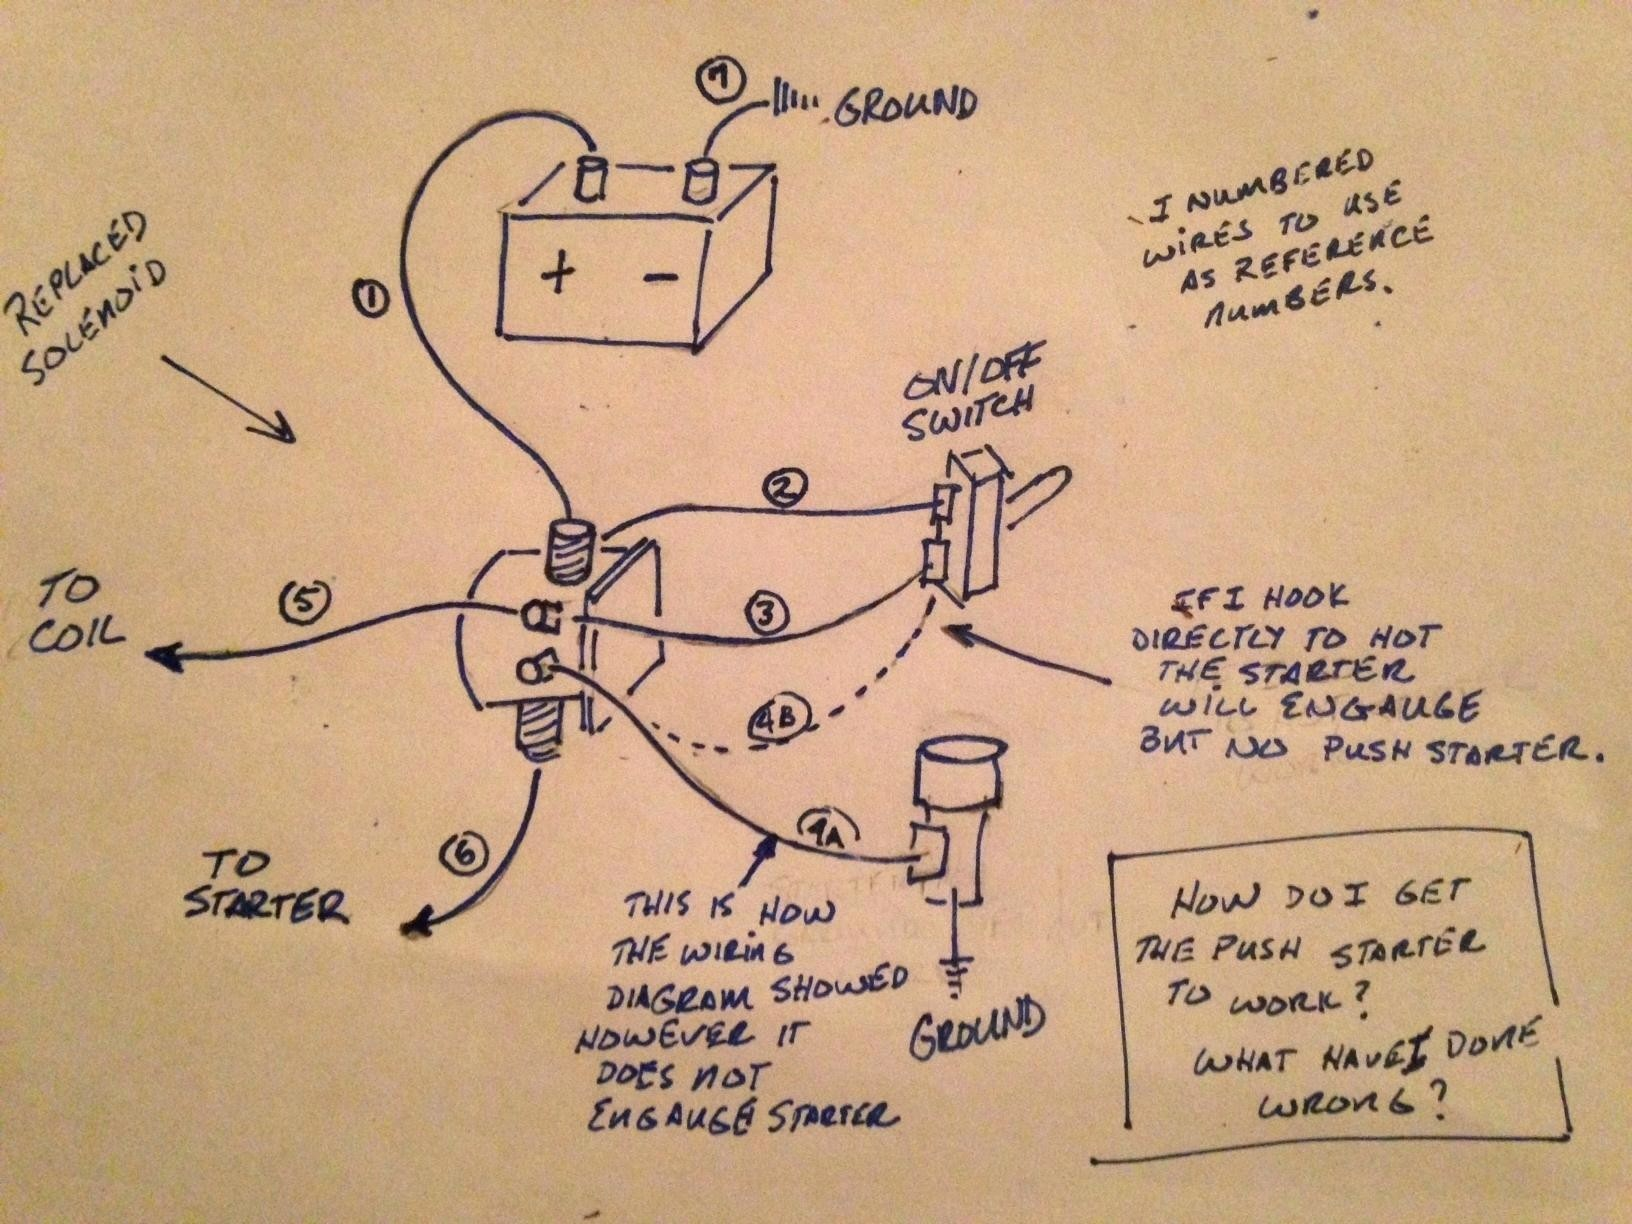 wiring diagram for 8n ford tractor 6 volt wiring library 1950 8N Ford Tractor Wiring Diagram 6 Volt ford tractor ignition switch wiring diagram reference wiring diagram 8n wiring diagram beautiful ford tractor ignition